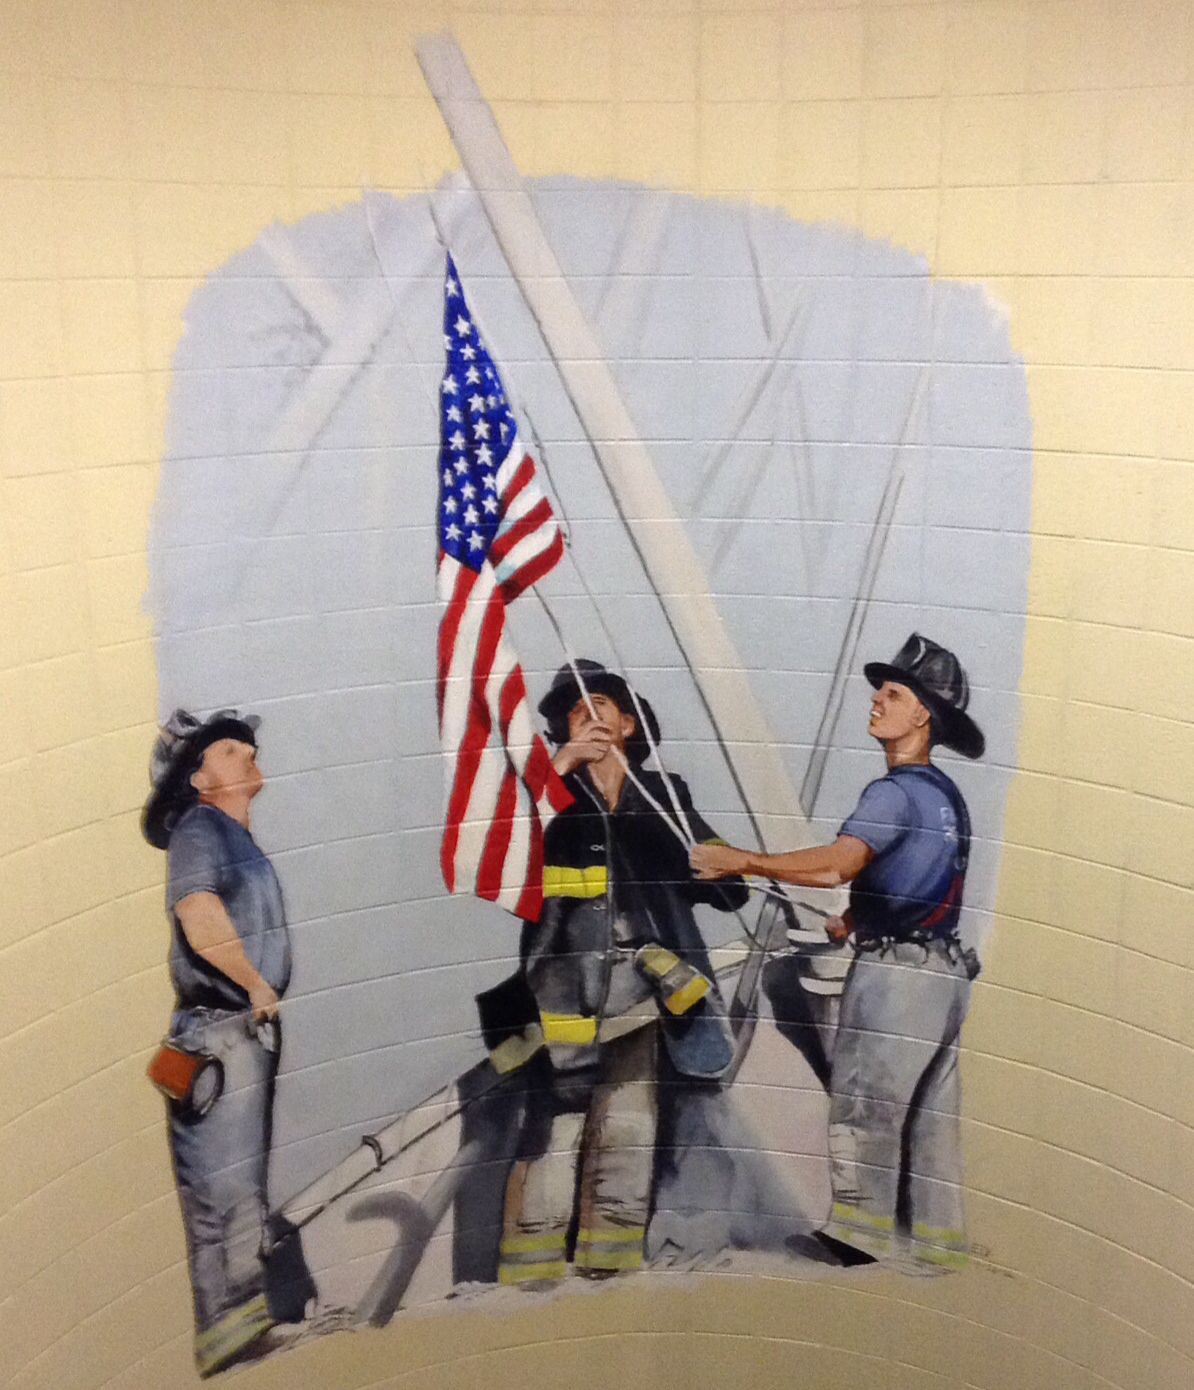 Painting in stairwell at torrington fire department